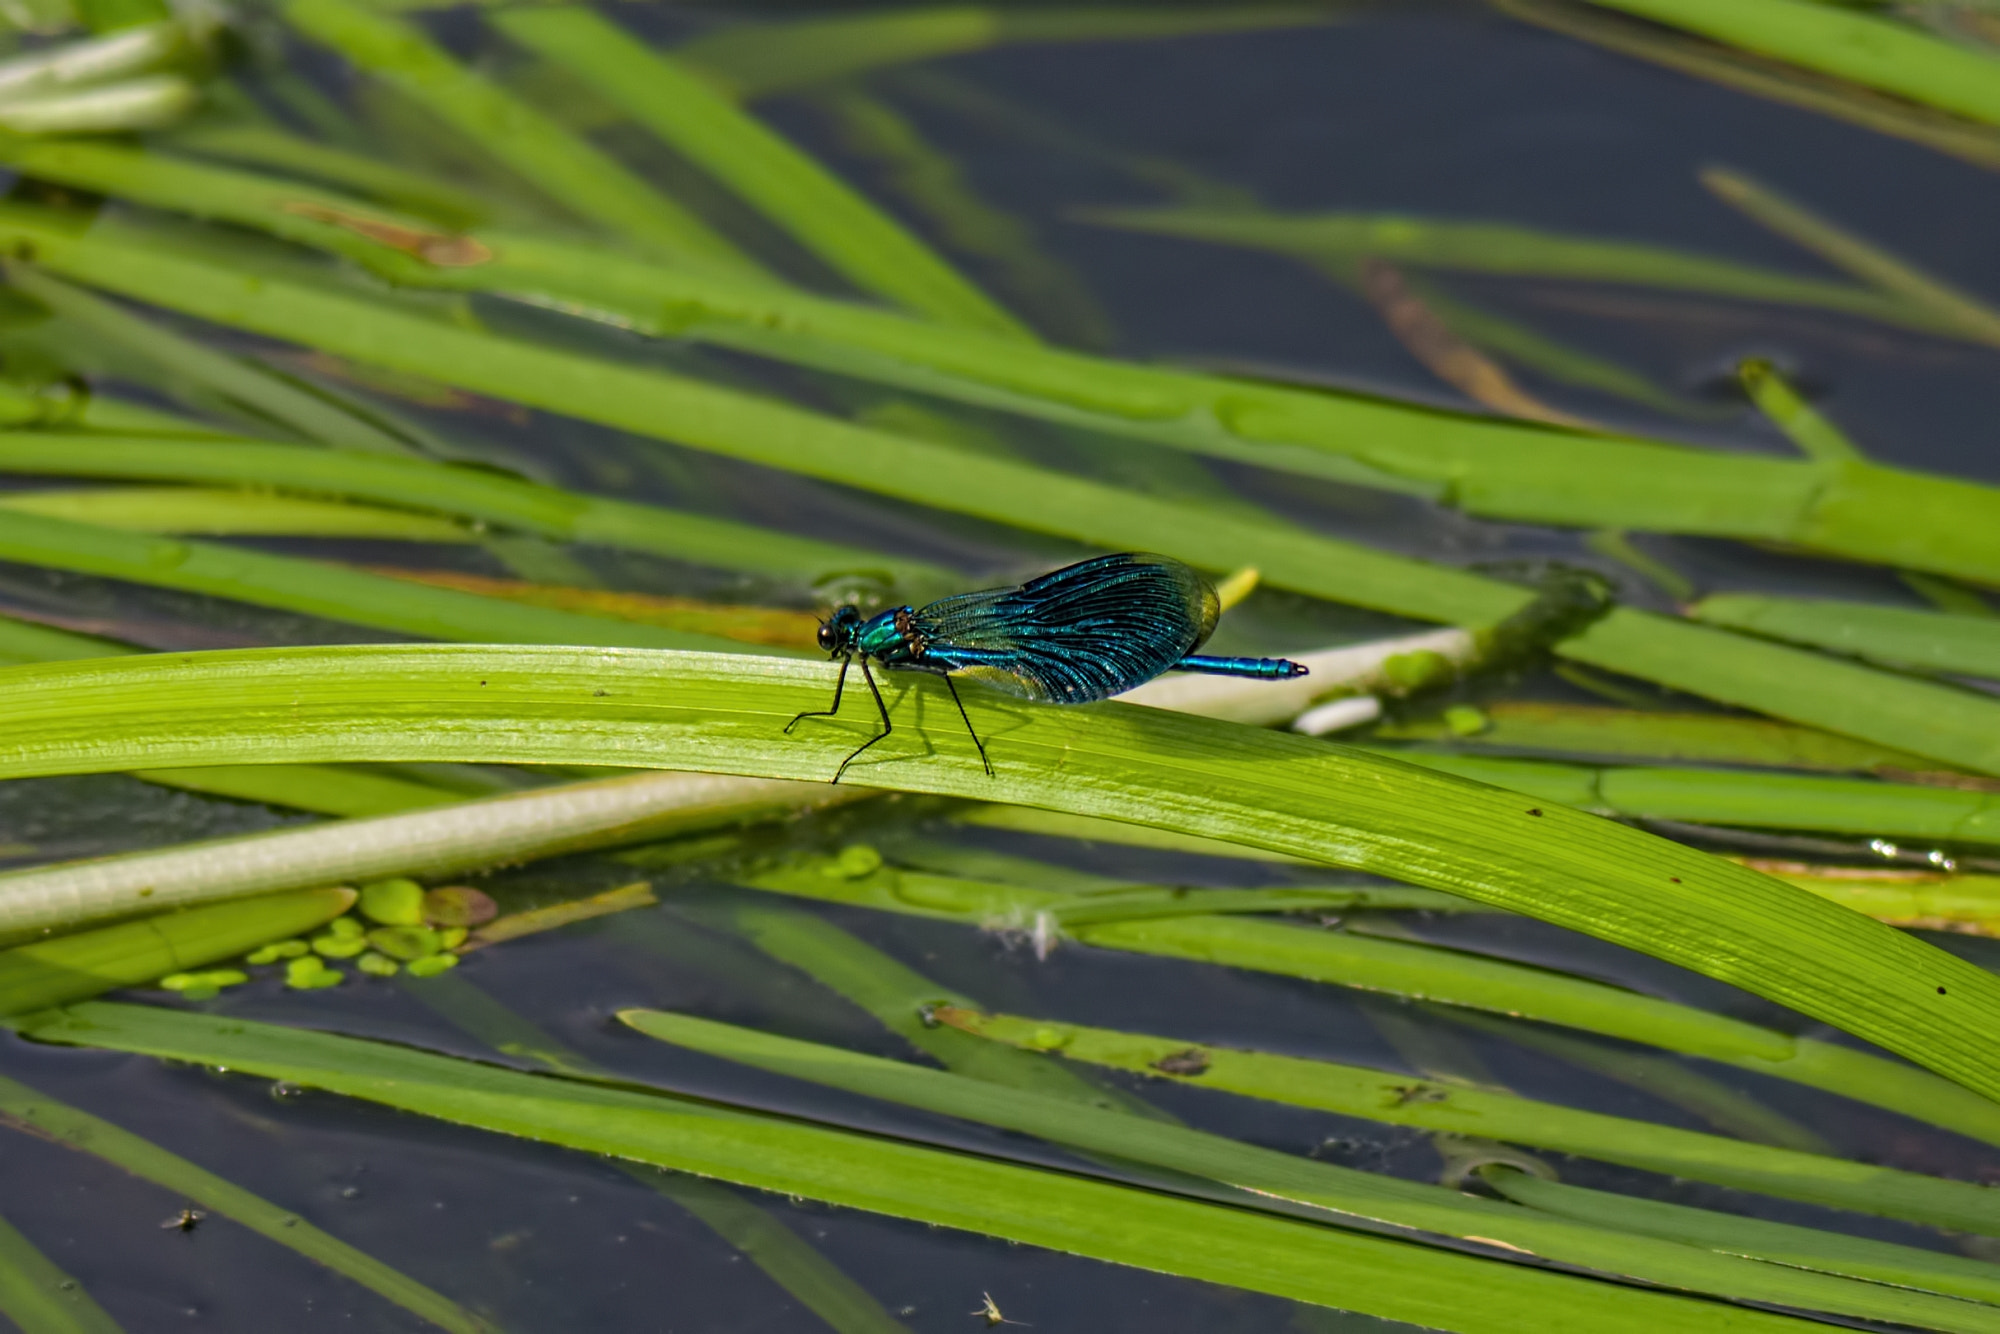 Photograph Dragonfly by K. Beck on 500px